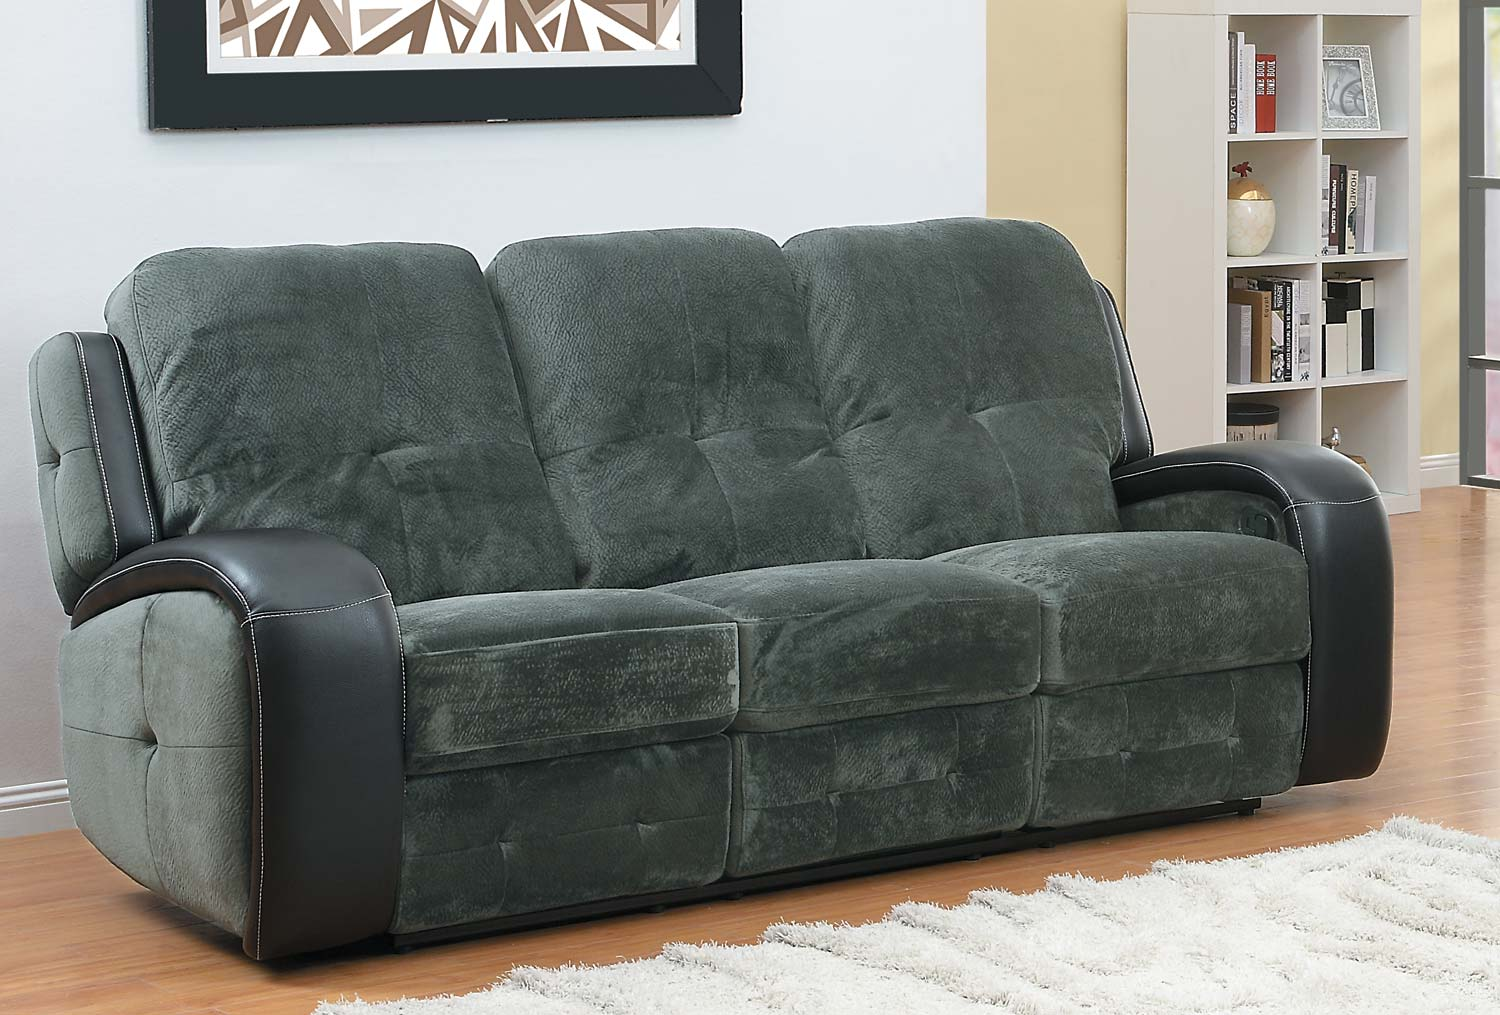 Homelegance Flatbush Double Recliner Sofa Textured Plush Microfiber Black Bi Cast Vinyl